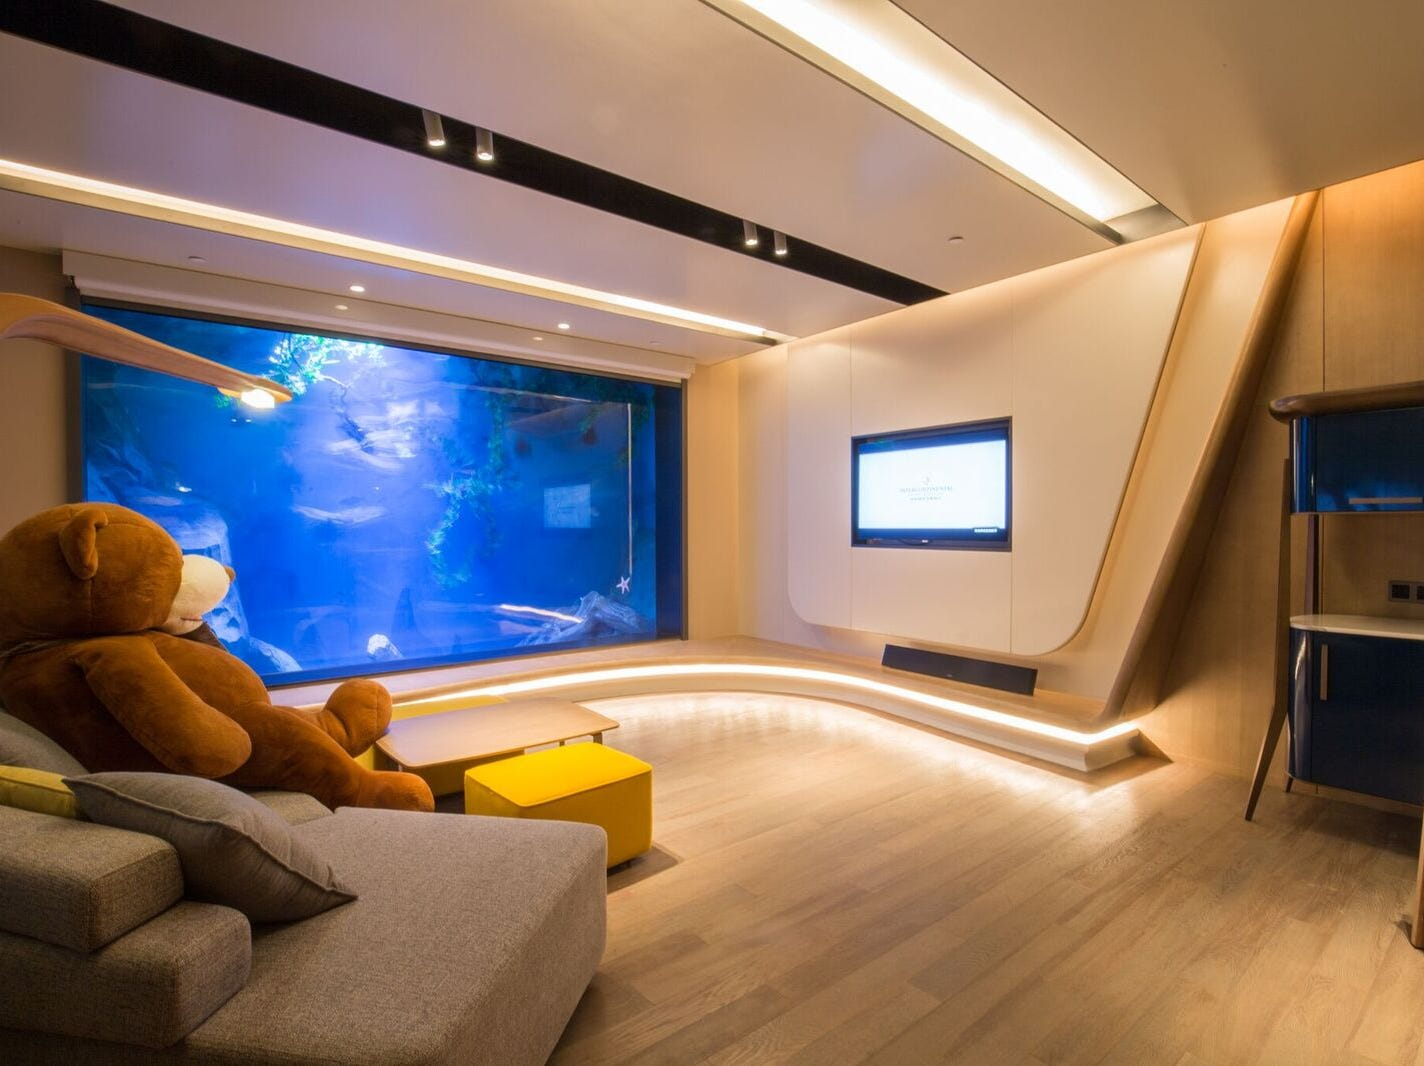 Six underwater duplex suites have entertaining aquarium views, which are sure to be popular with families. They are designed to resemble a yacht with their hardwood floors and nautical accents. Like the guest rooms, their color schemes evoke hues from the rocks like iron ore, red iron ore and calcium carbonate albeit in more evocative forms.